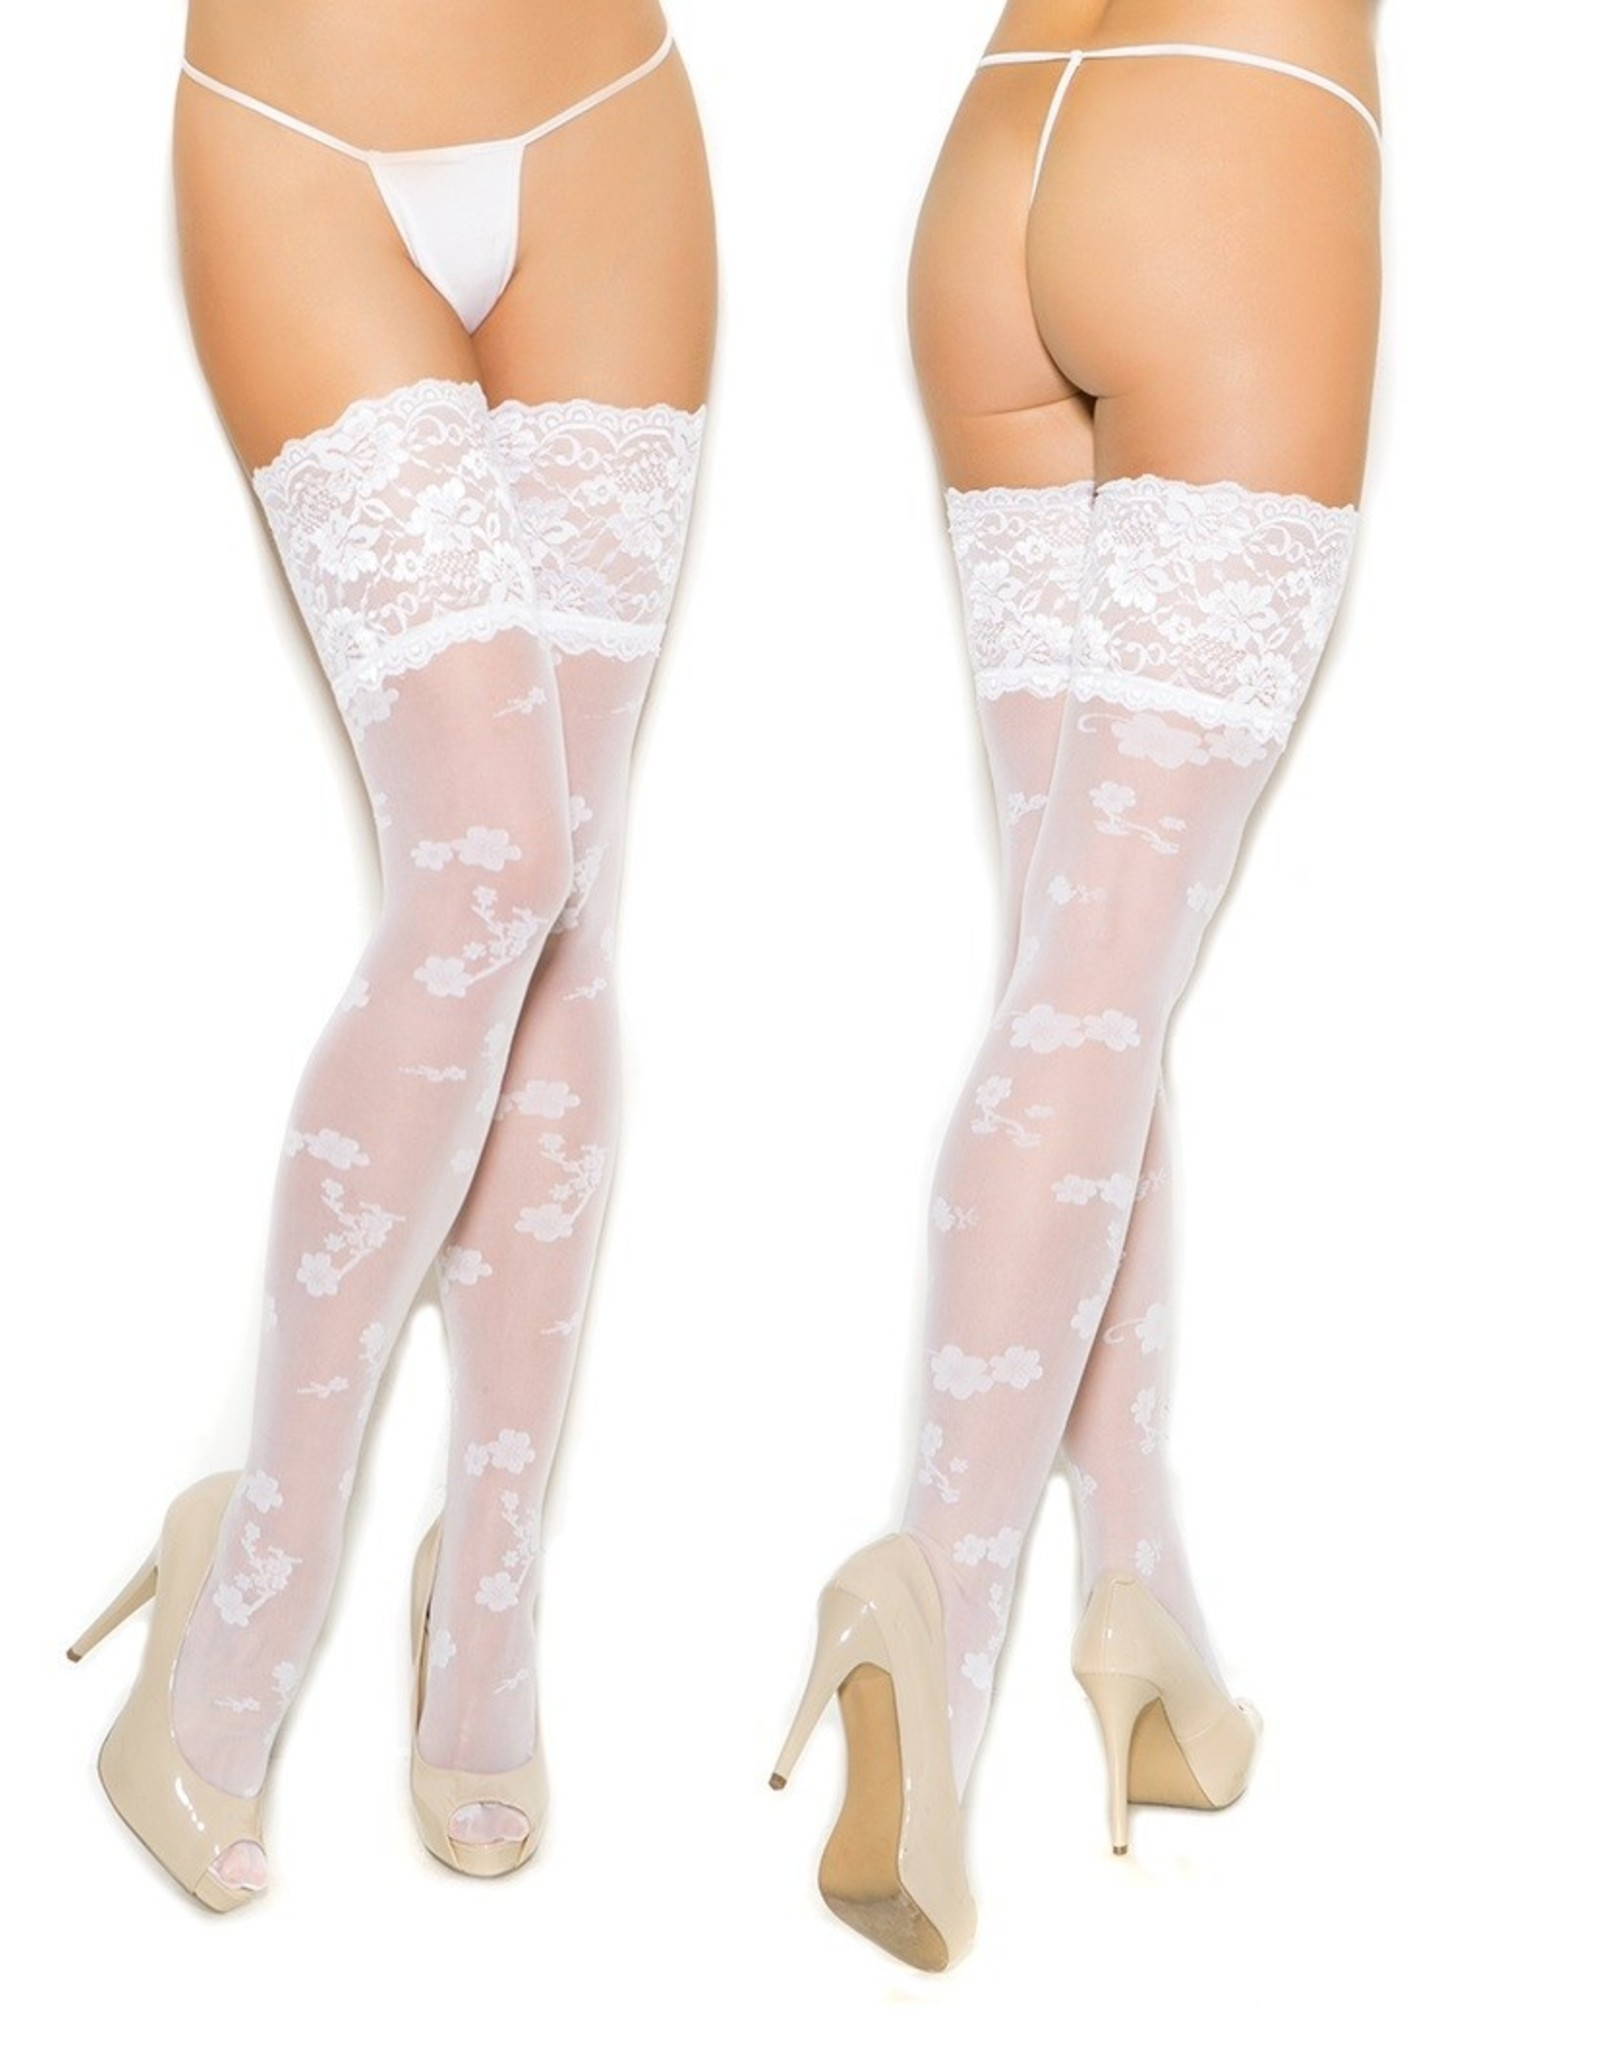 ELEGANT MOMENTS - FLORAL PRINT SHEER THIGH HIGHS - WHITE - ONE SIZE